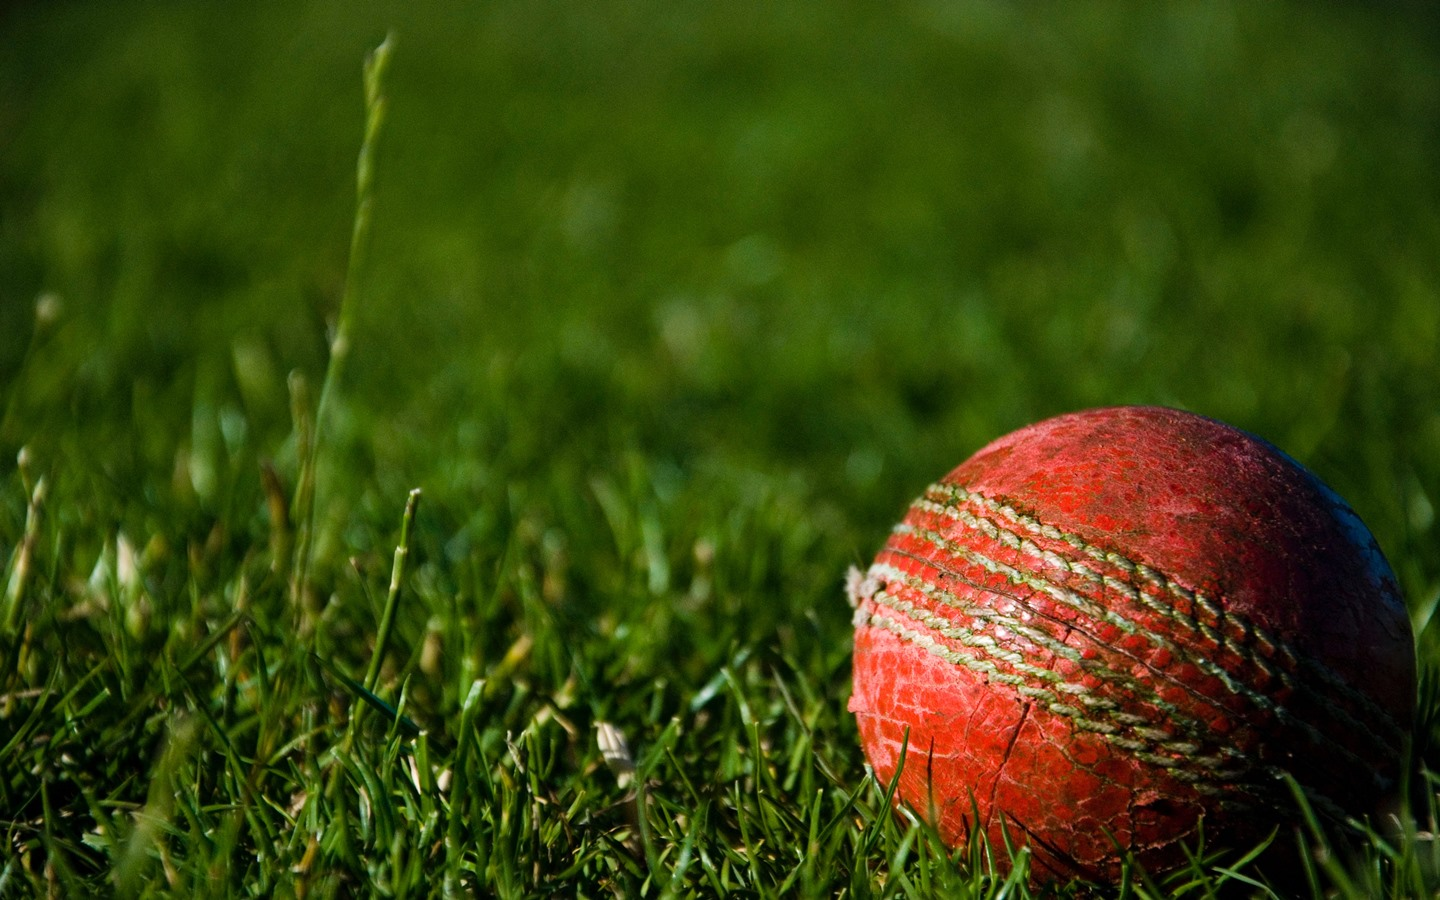 Upcoming events in dhaka for cricket lovers